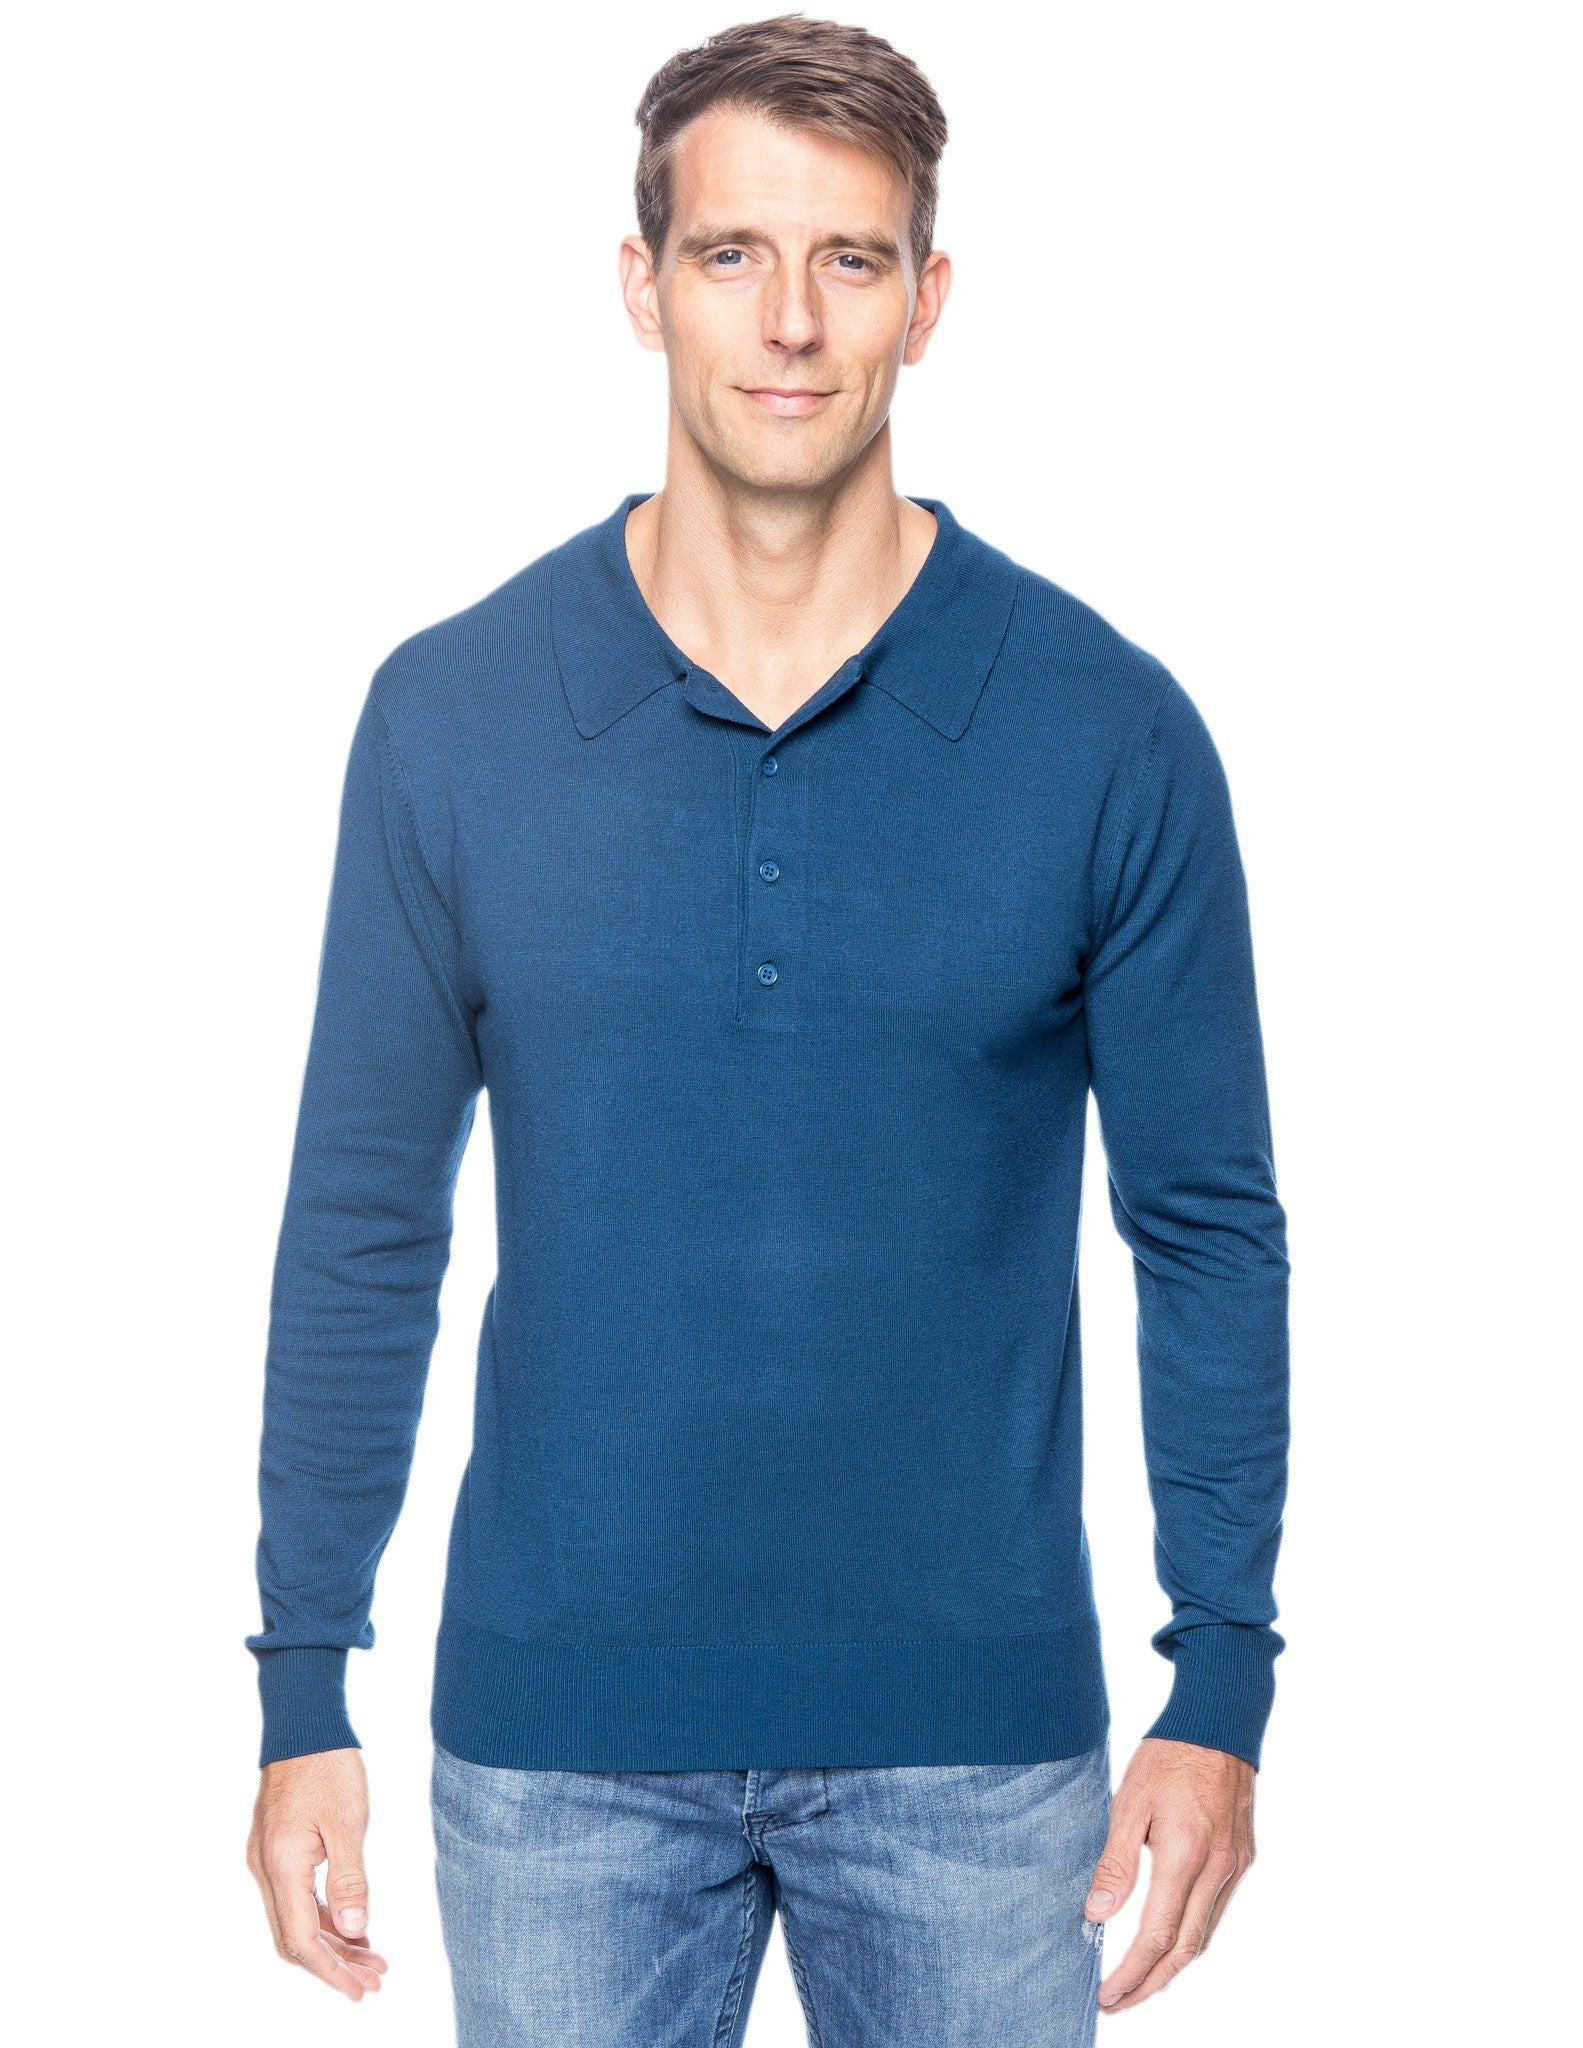 Classic Knit Long Sleeve Polo Sweater - Teal